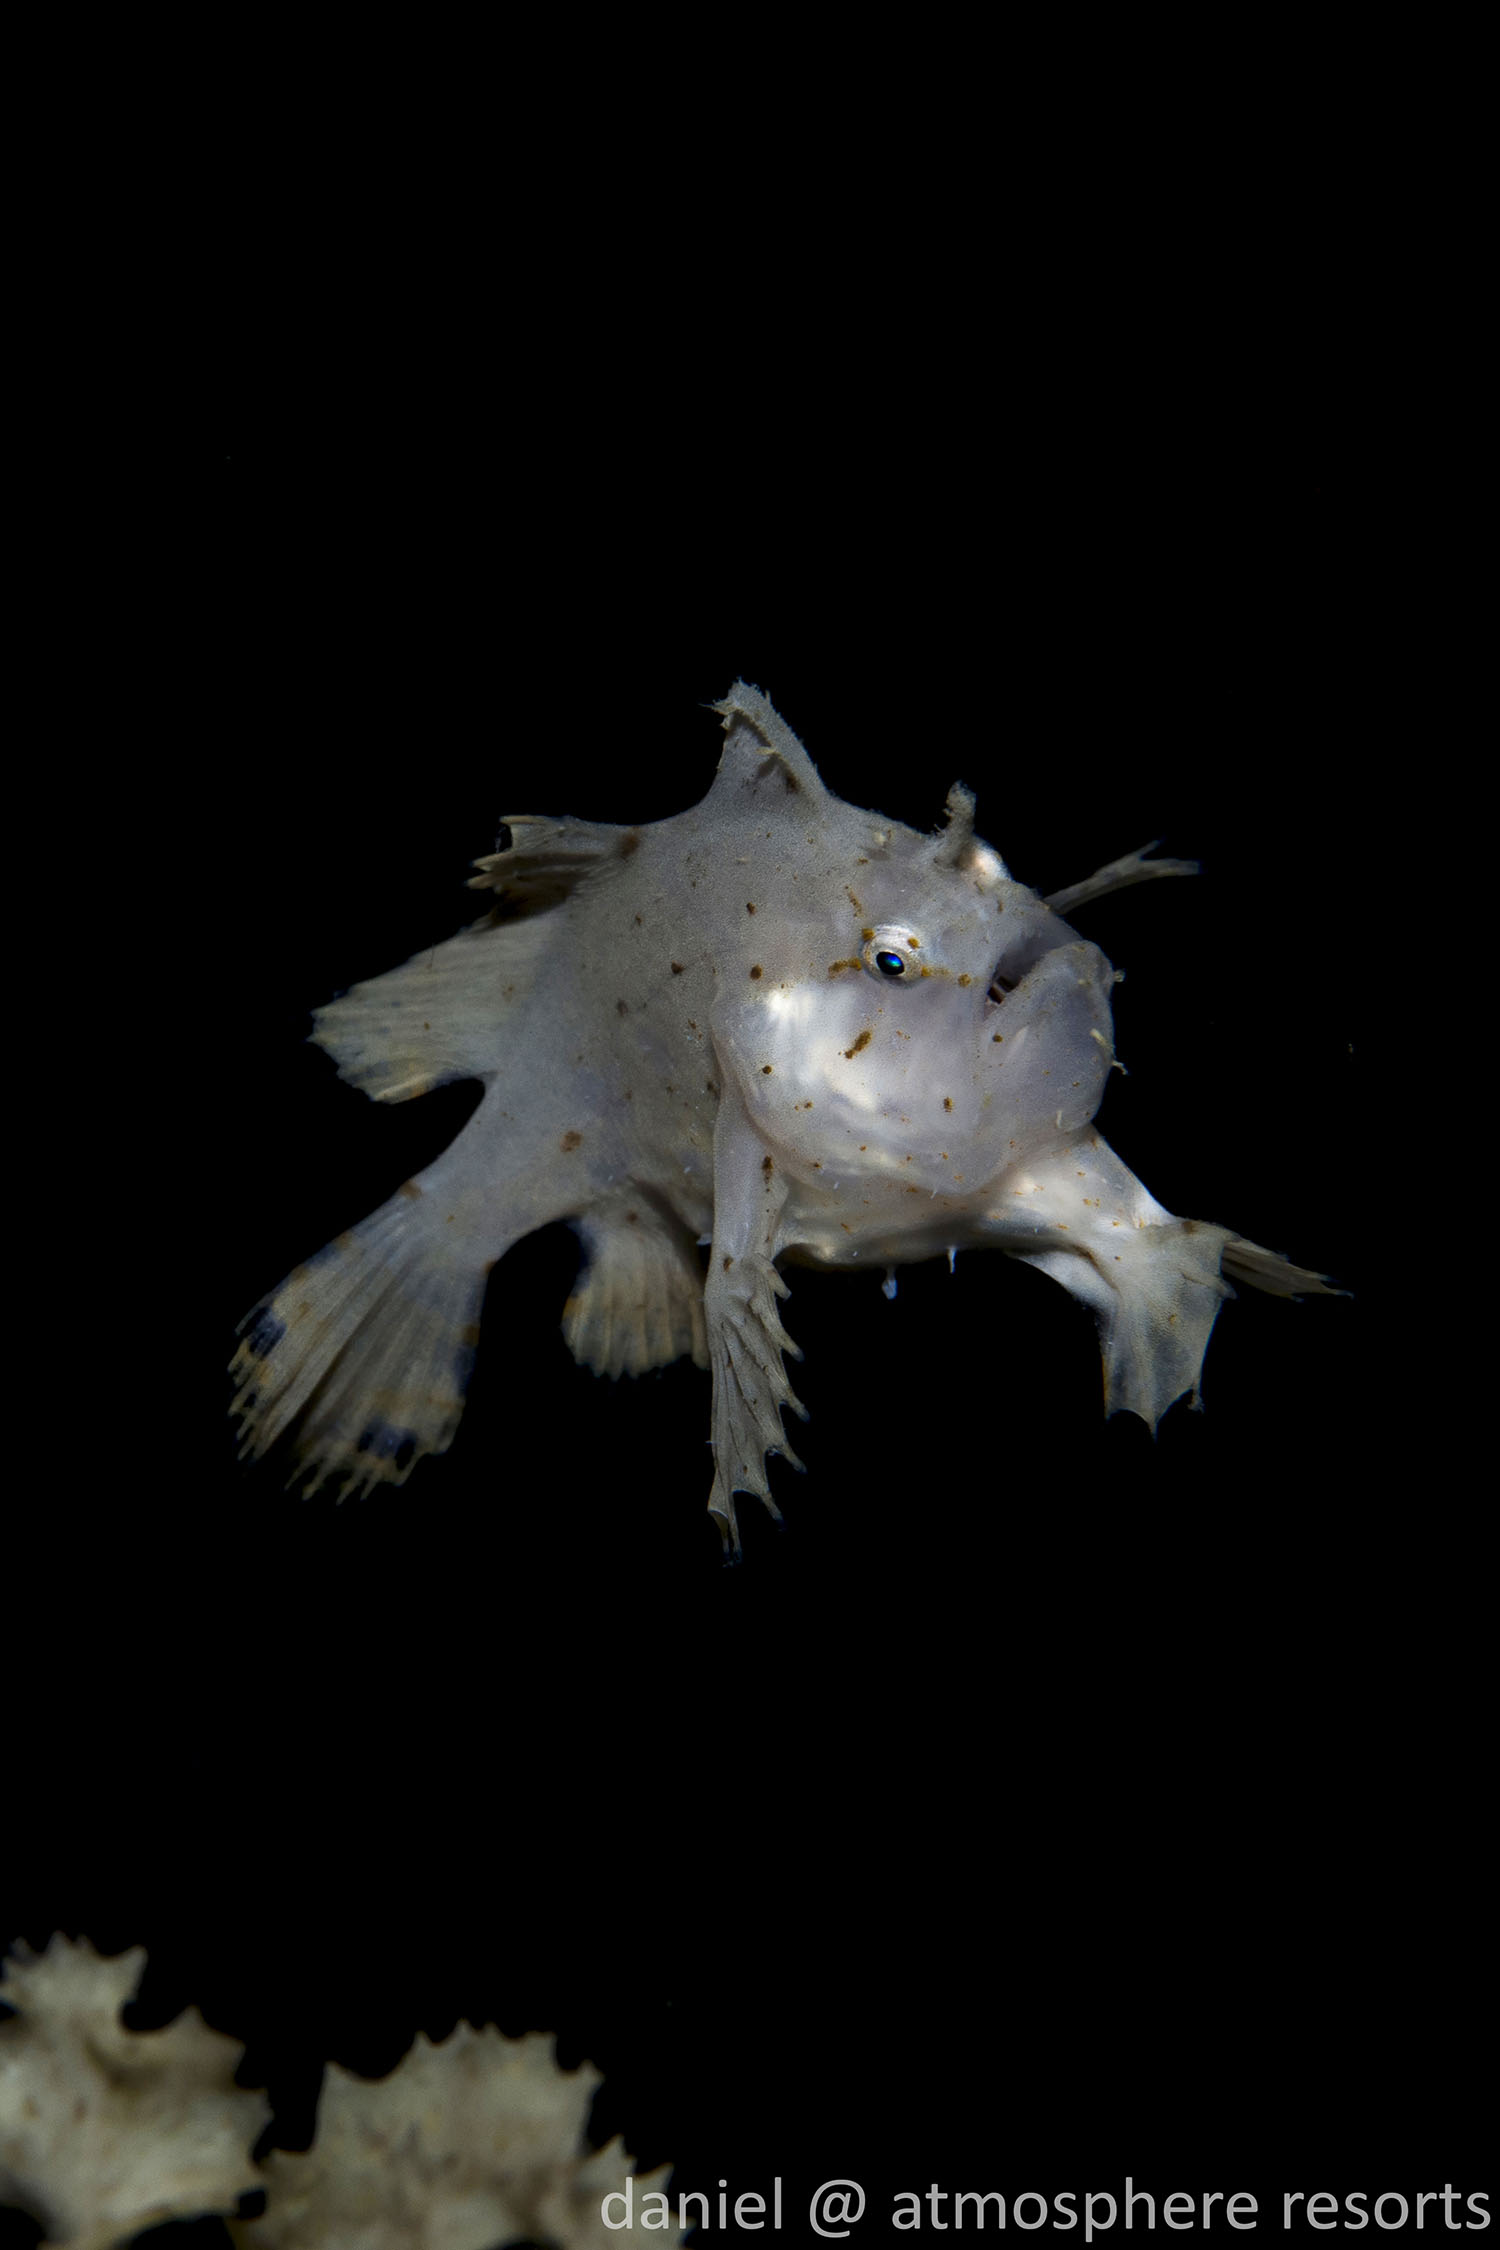 Cute as a button! Juvenile sargassumfish baby frogfish photographed by daniel Geary, Atmosphere Resort, Philippines